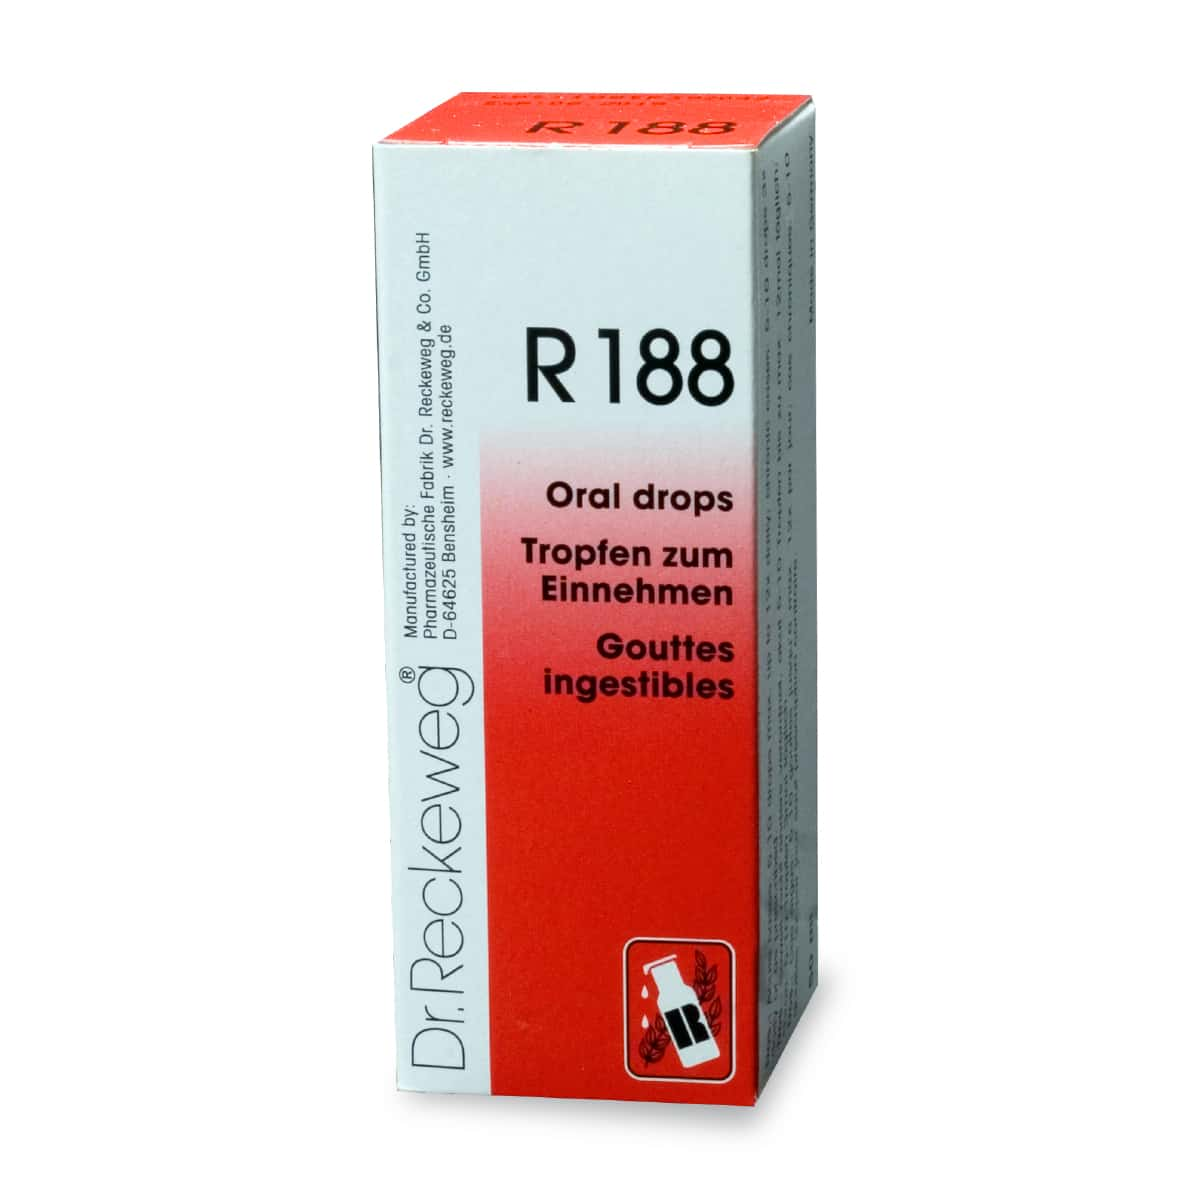 R188-Homeopathicology.com